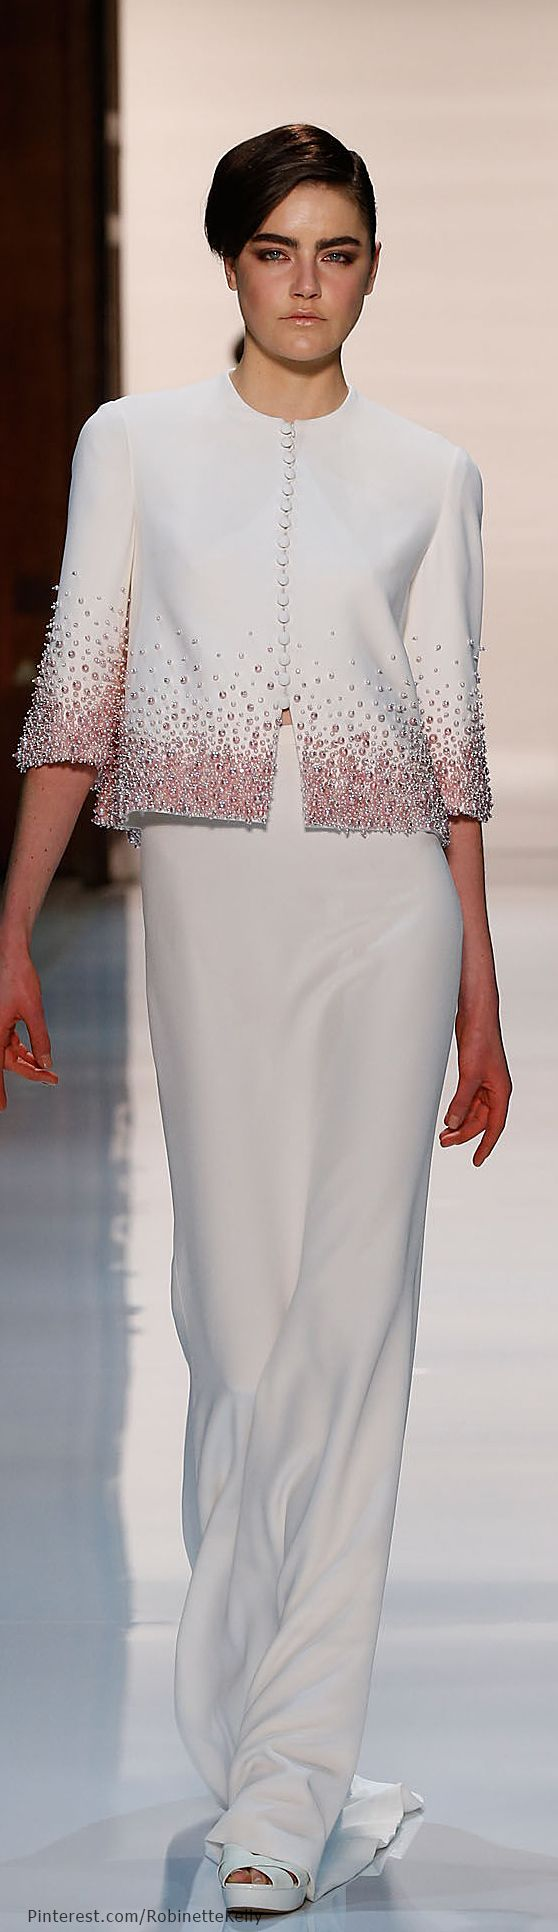 Georges Hobeika Haute Couture | S/S 2014: